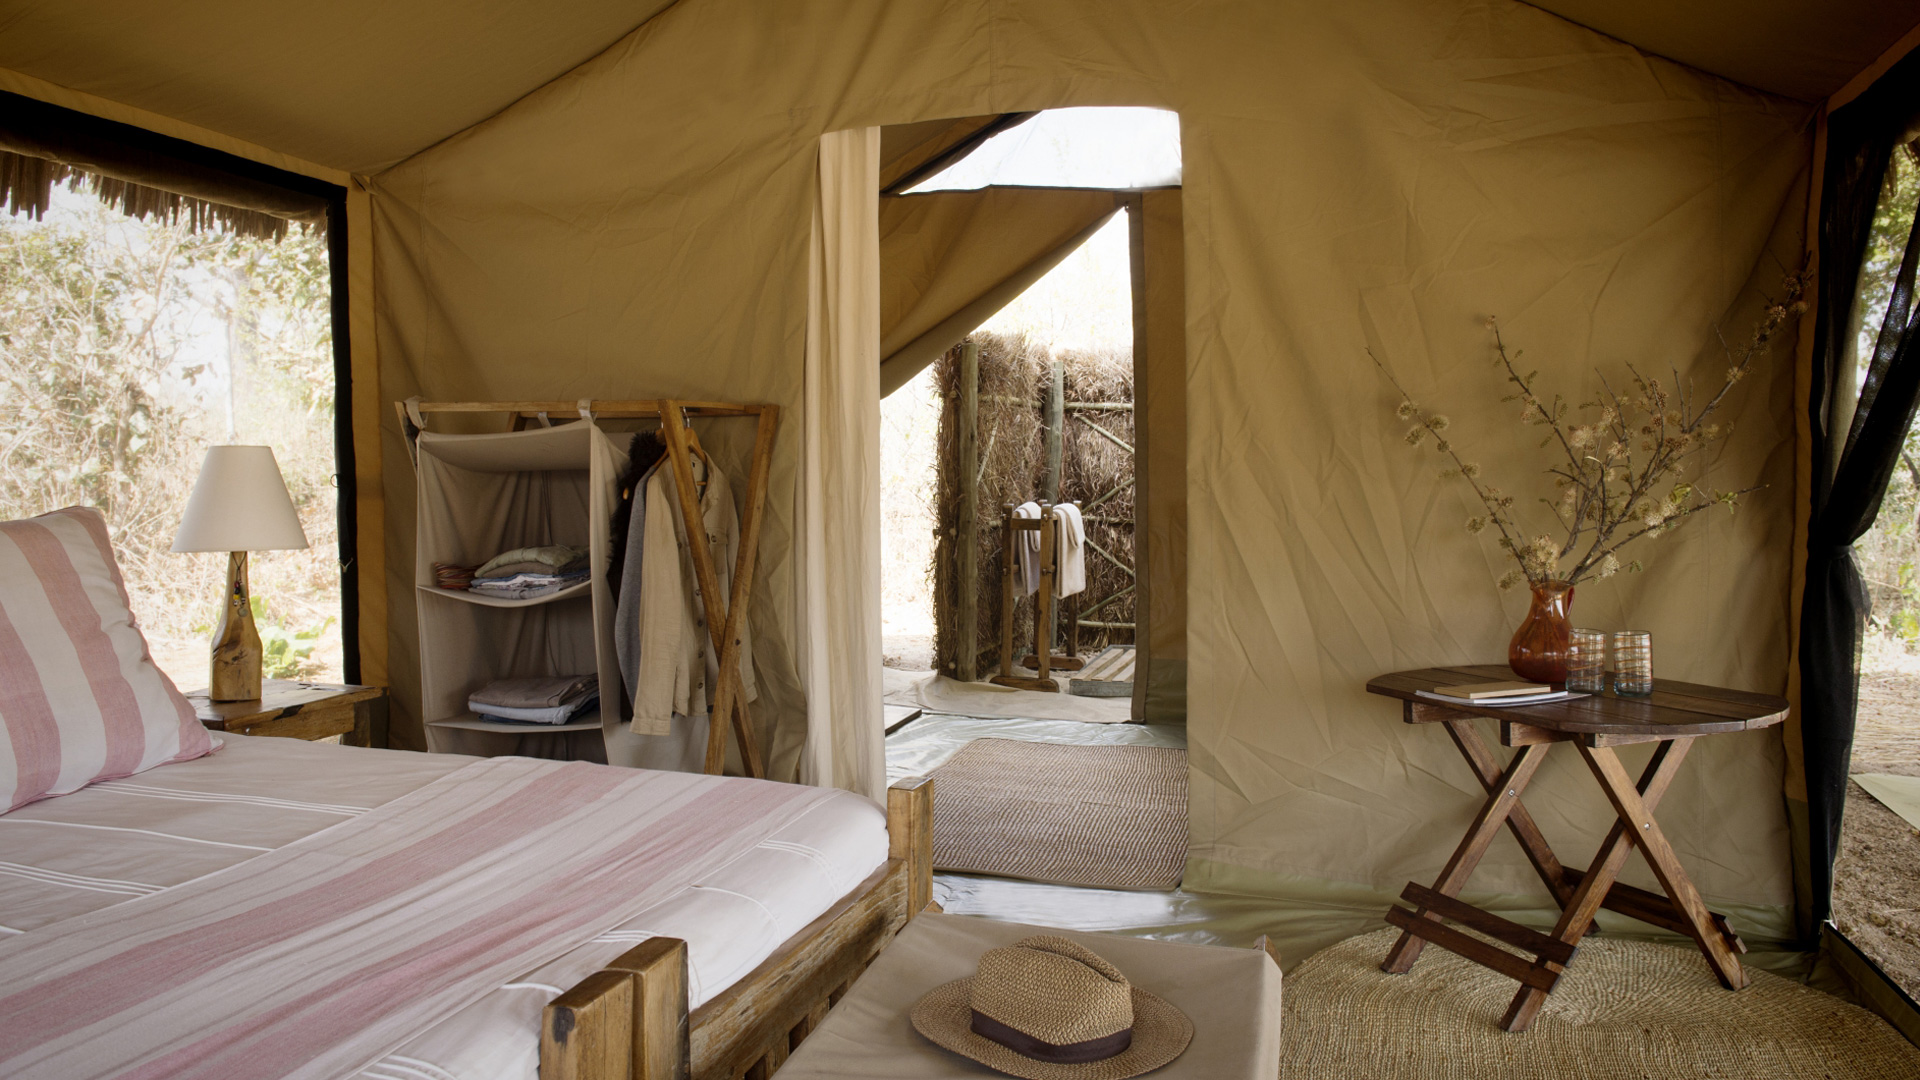 NEW-MAIN-Kigelia-Ruaha-tent-interior-header